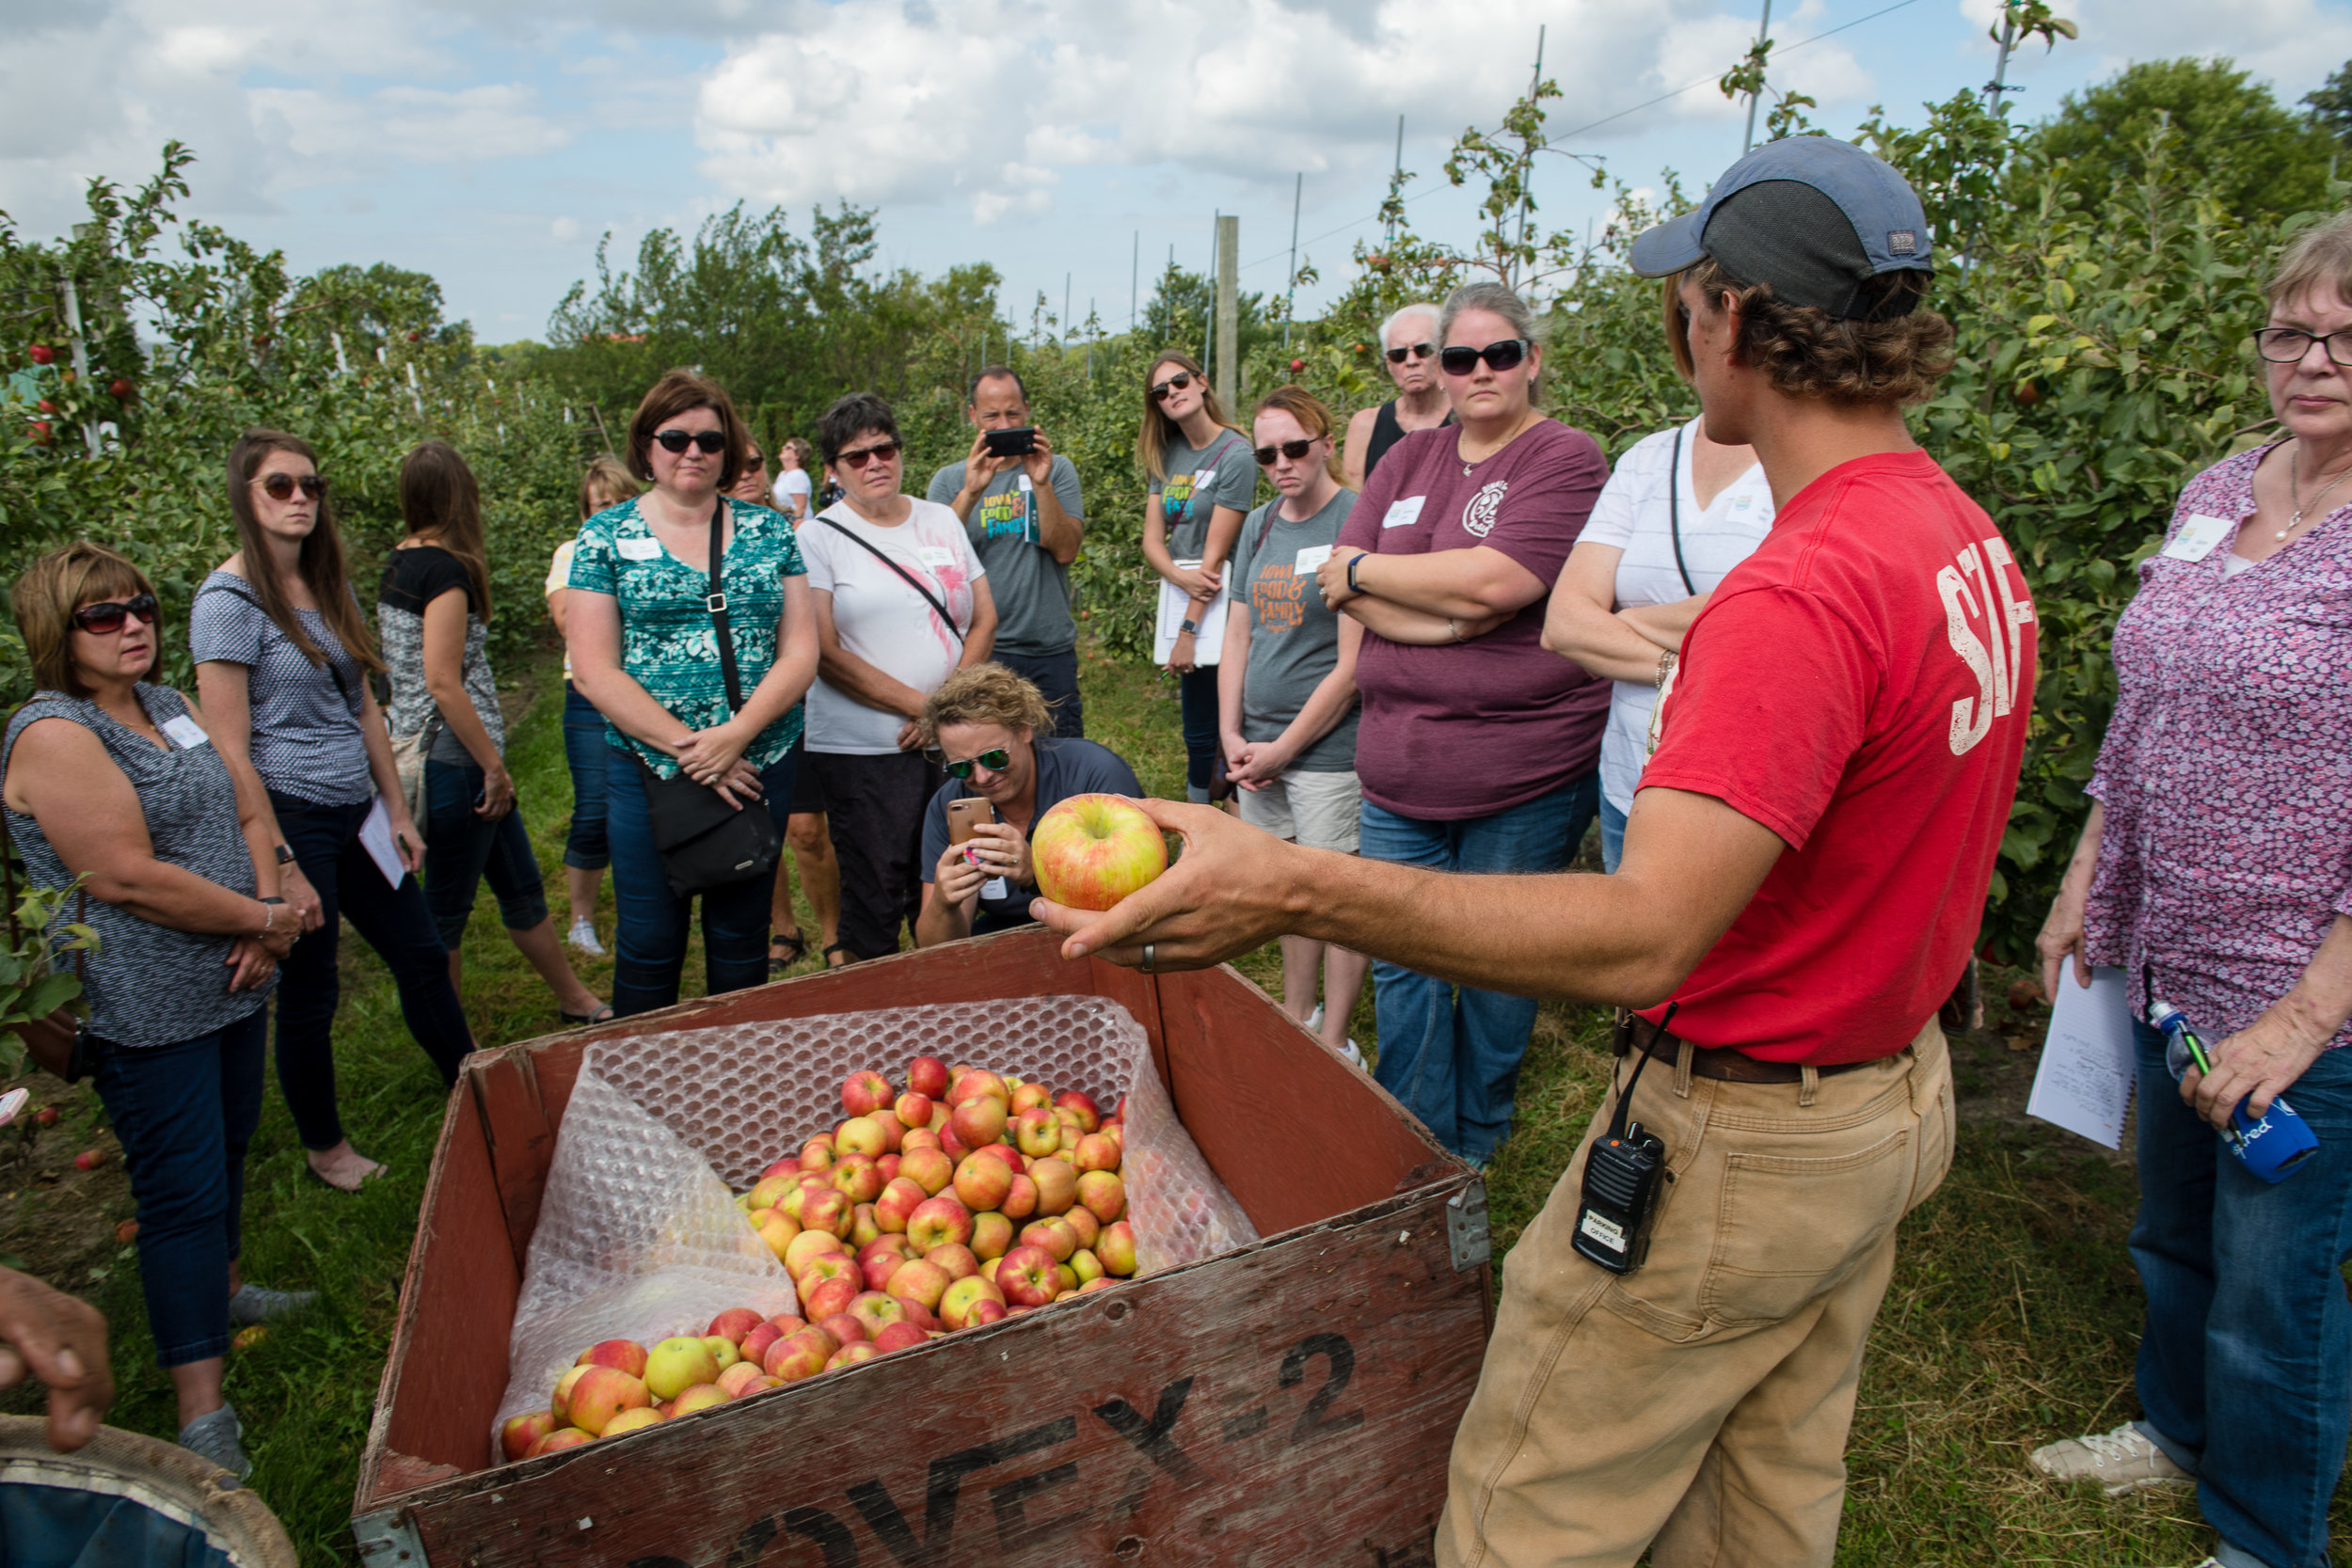 Food U participants spoke with the Center Grove Orchard horticulture supervisor, Brian Shilling. Photo credit: Joseph L. Murphy/Iowa Soybean Association